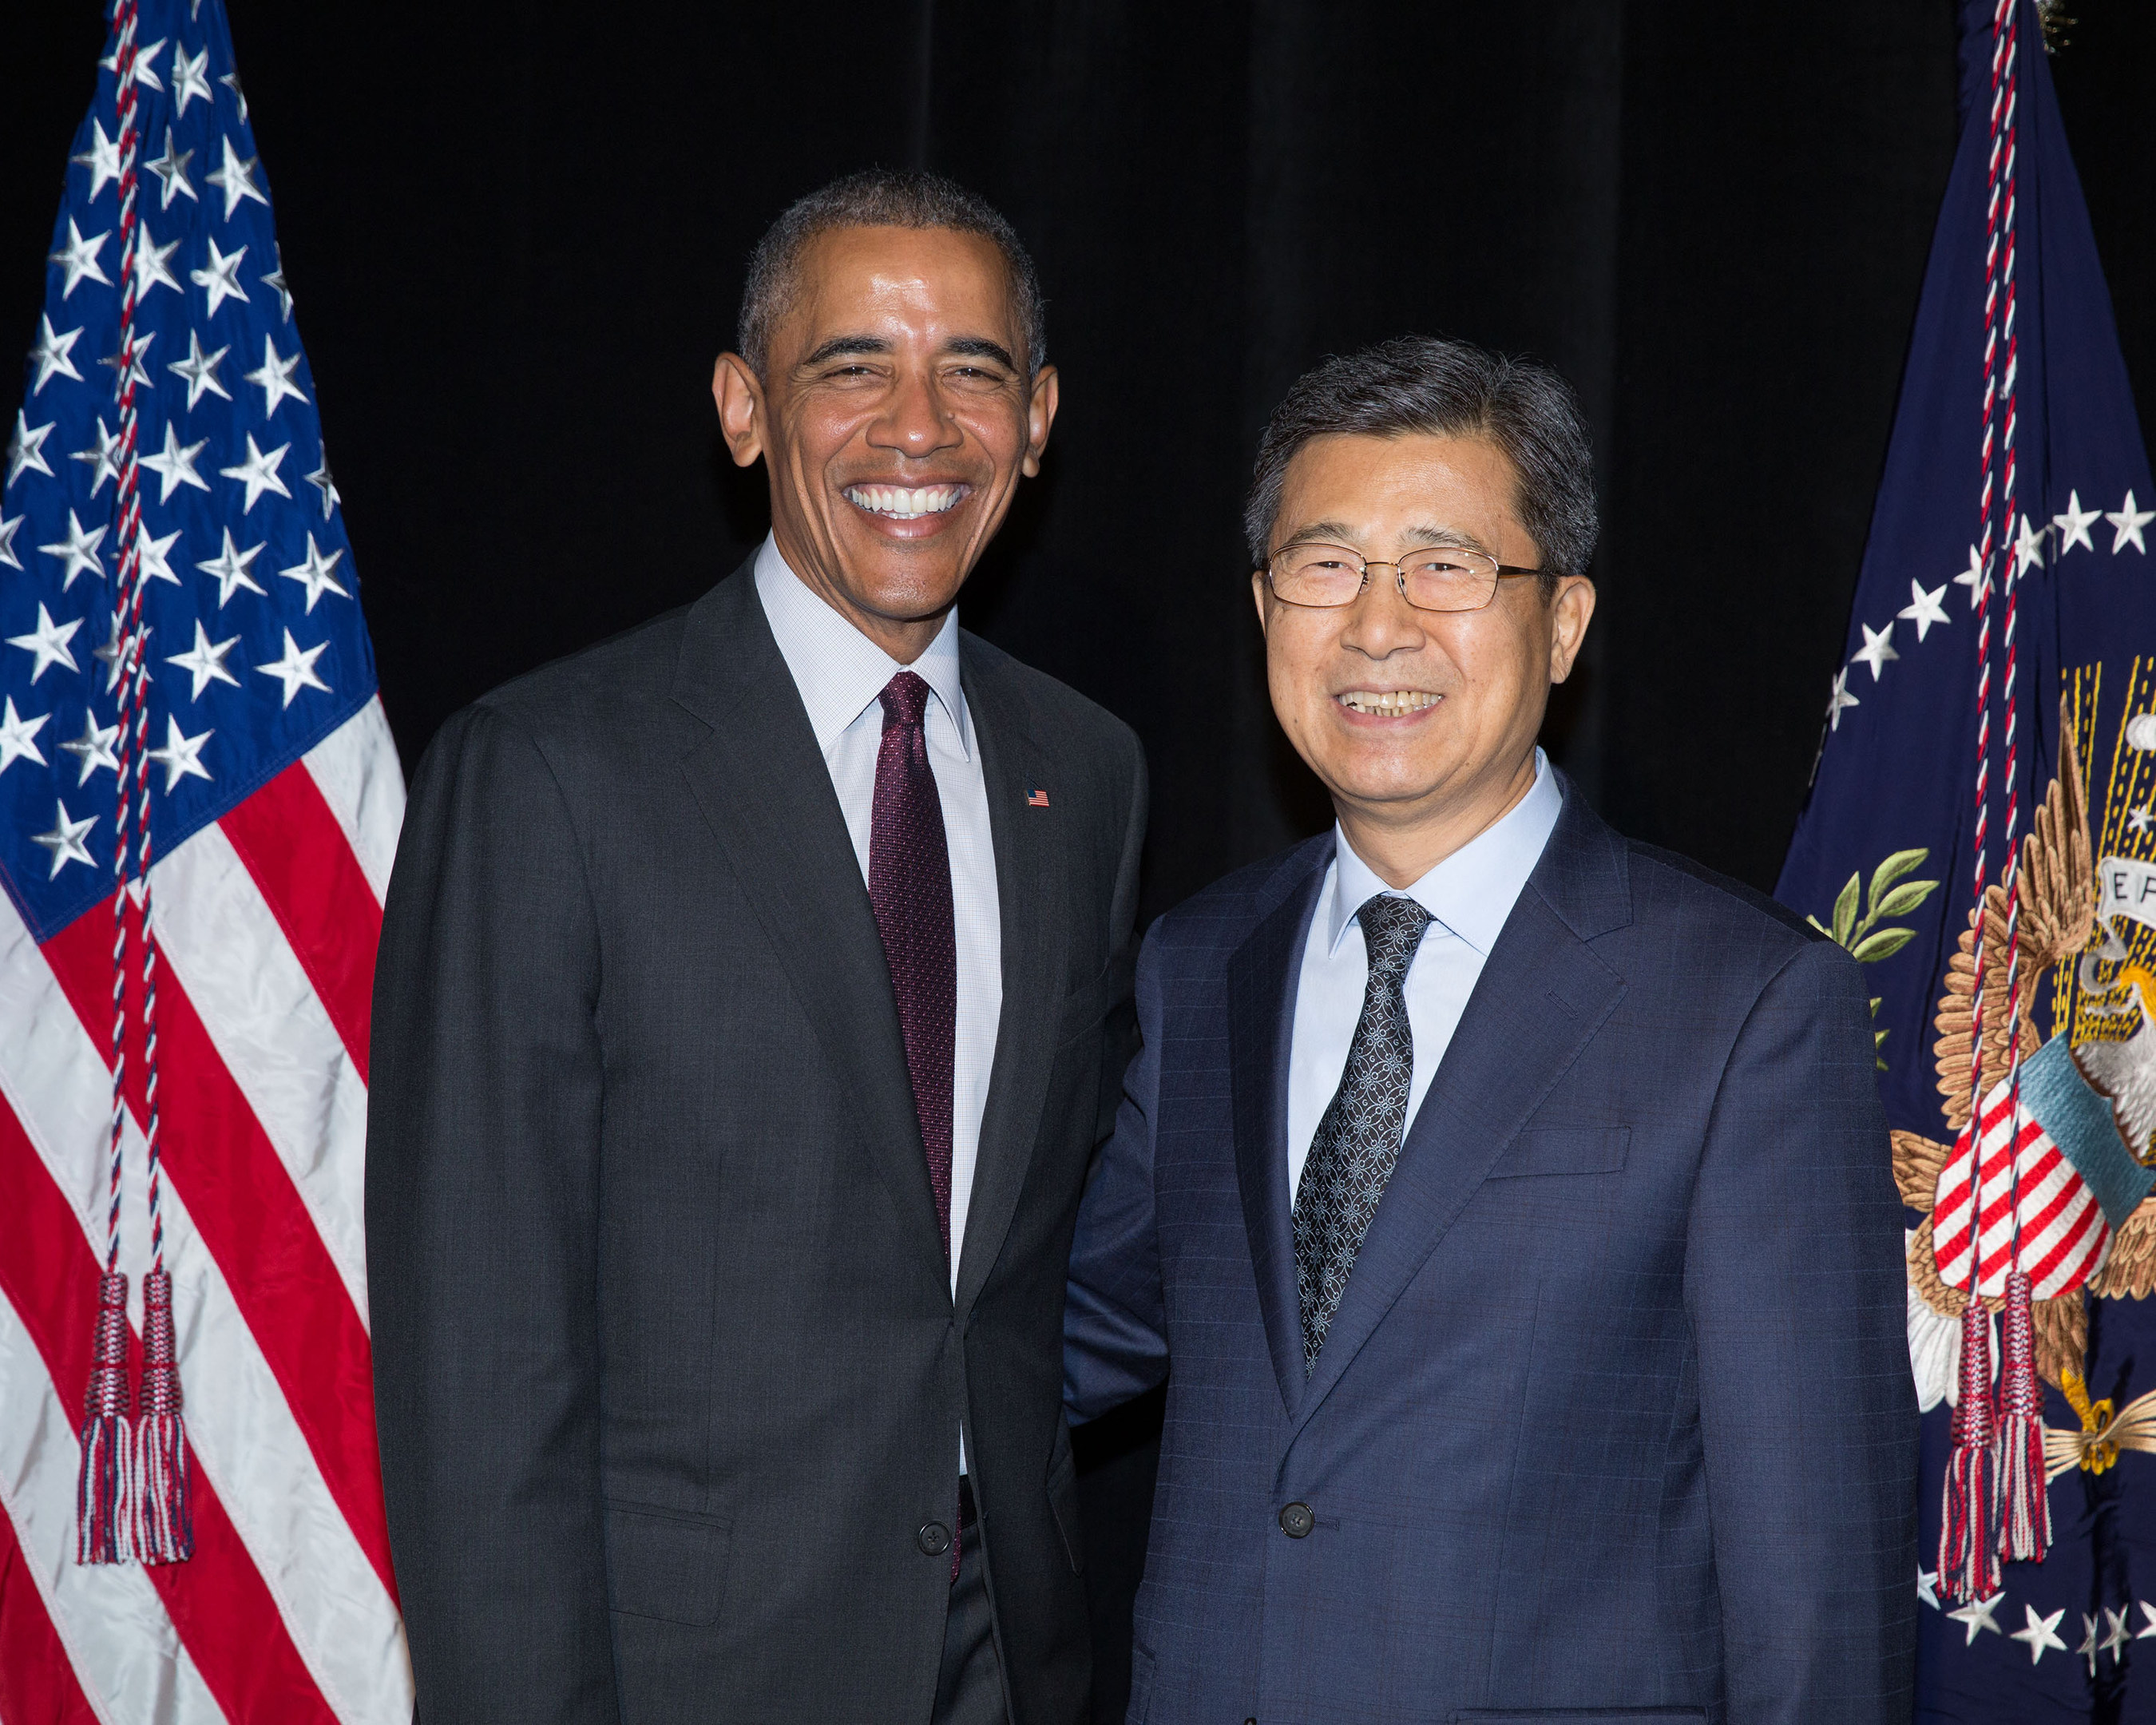 Hankook tire participates in meet and greet with president obama at hankook tire vice chairman and ceo seung hwa suh met with president barack obama in an m4hsunfo